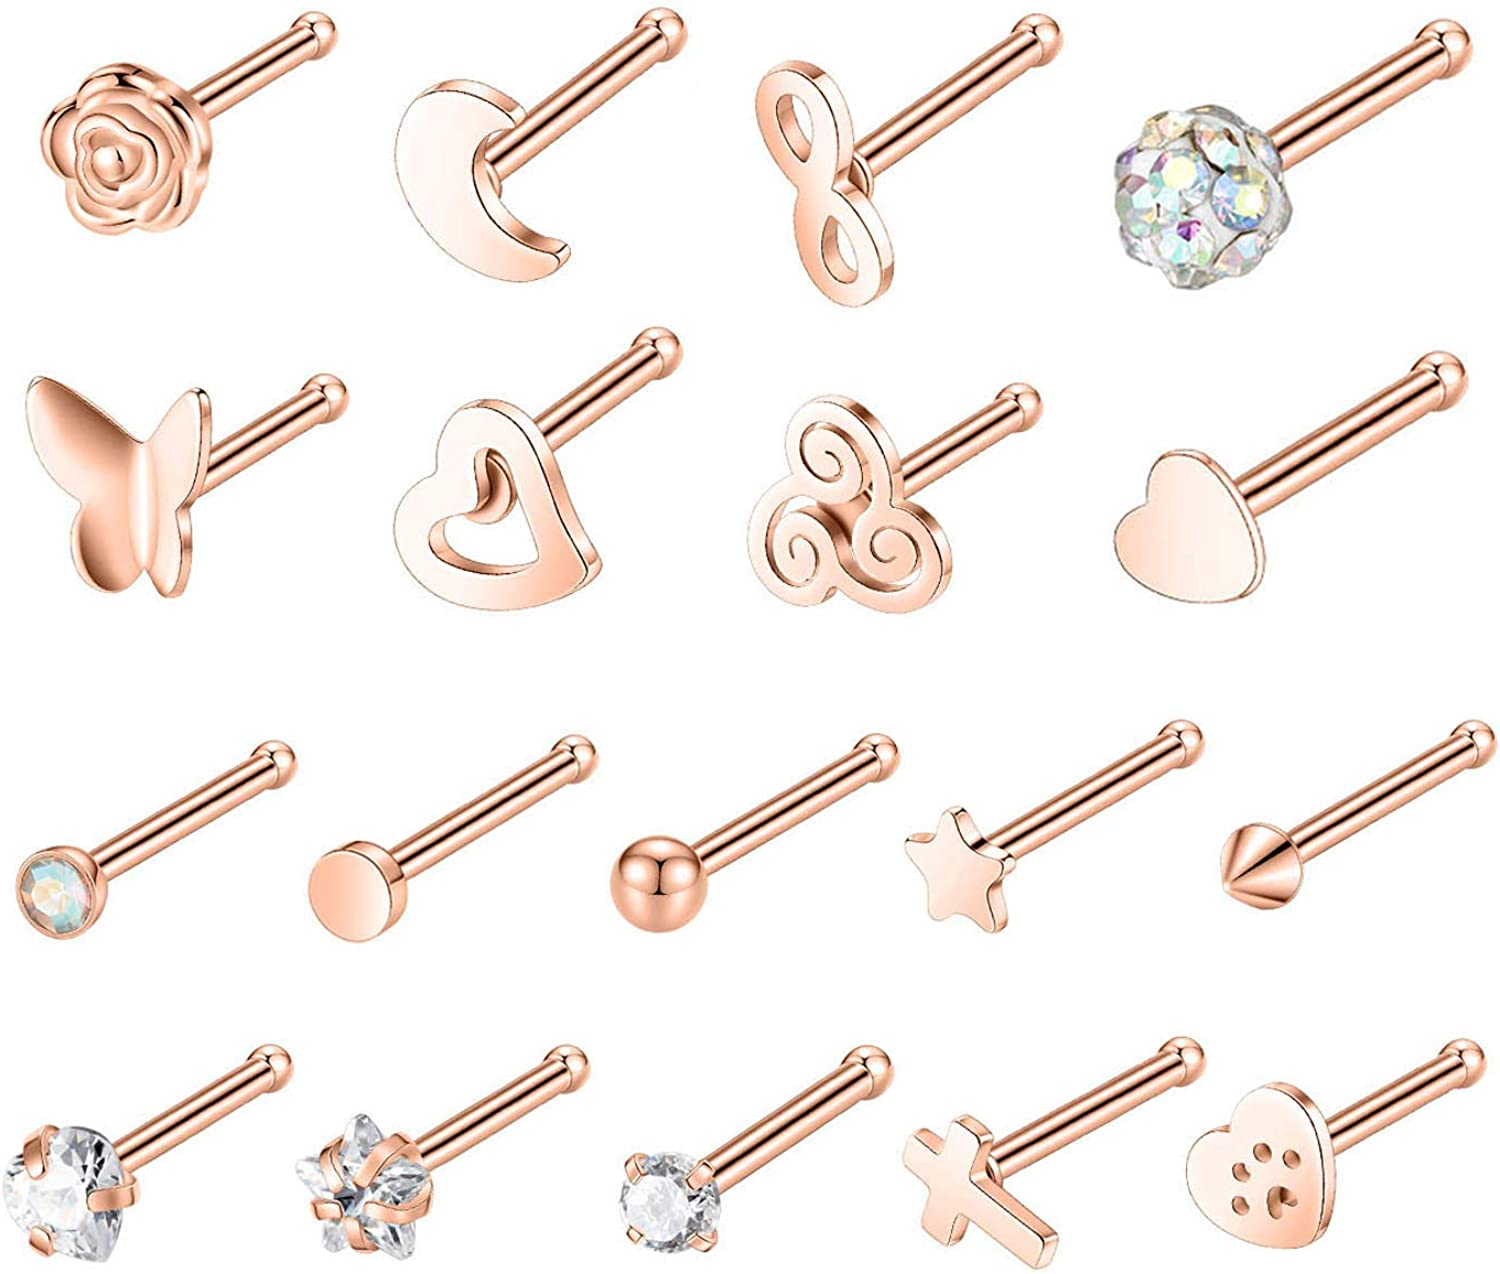 PEAKLINK 20G Cross Infinity Nose Studs Butterfly Nose Screw Heart Star Nose Piercing Cat Paw Body Jewelry 18Pcs